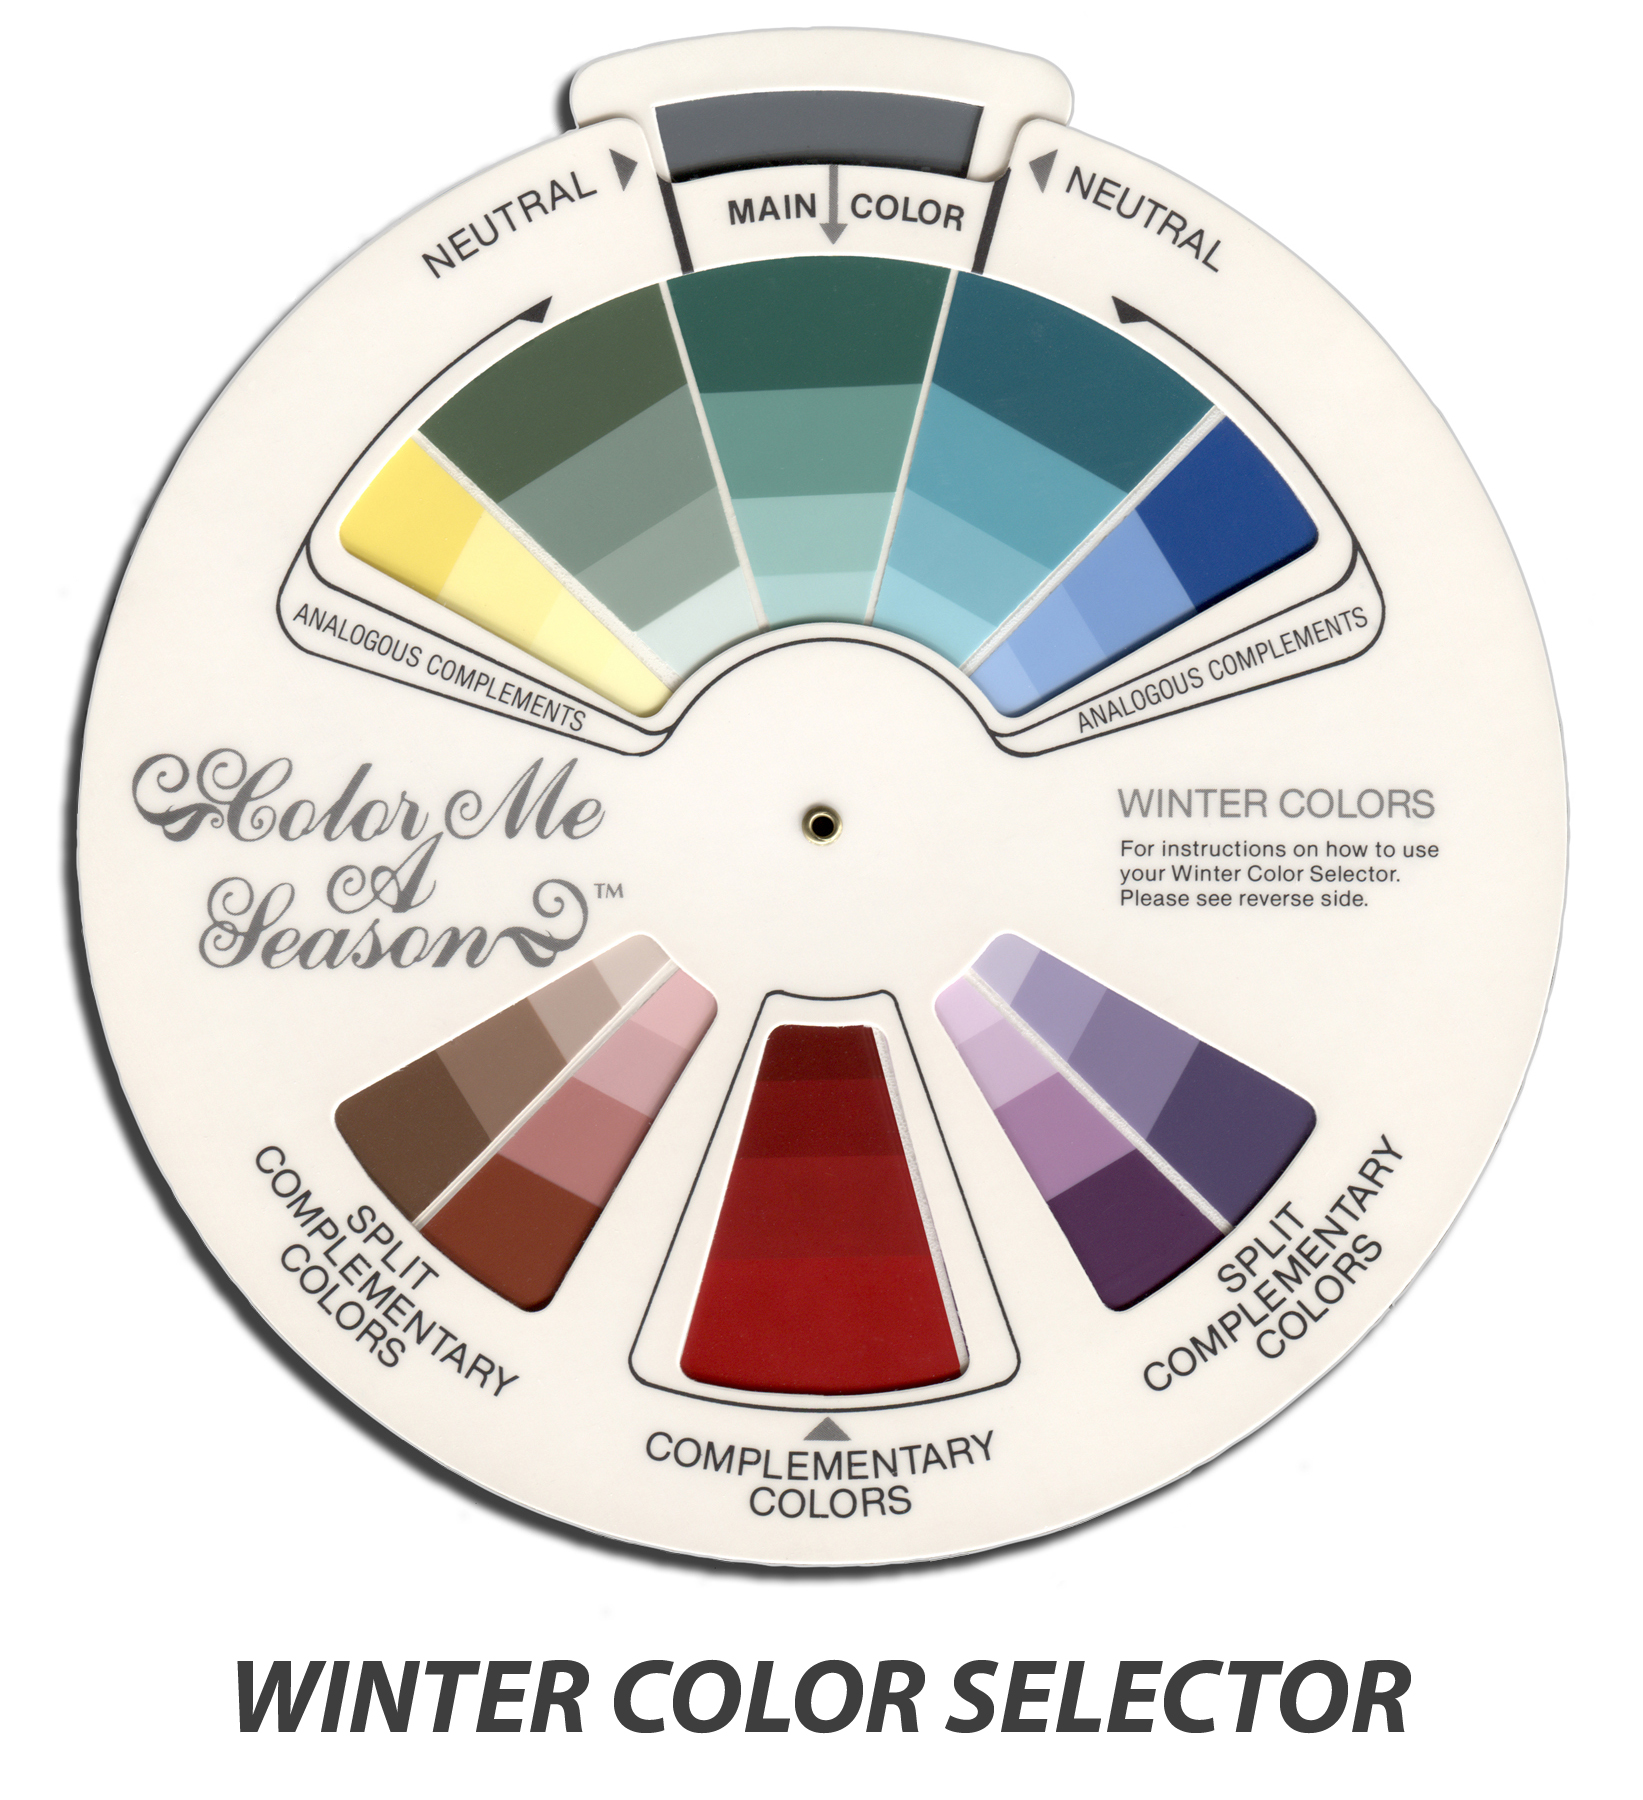 winterselector-text-200ppi.jpg